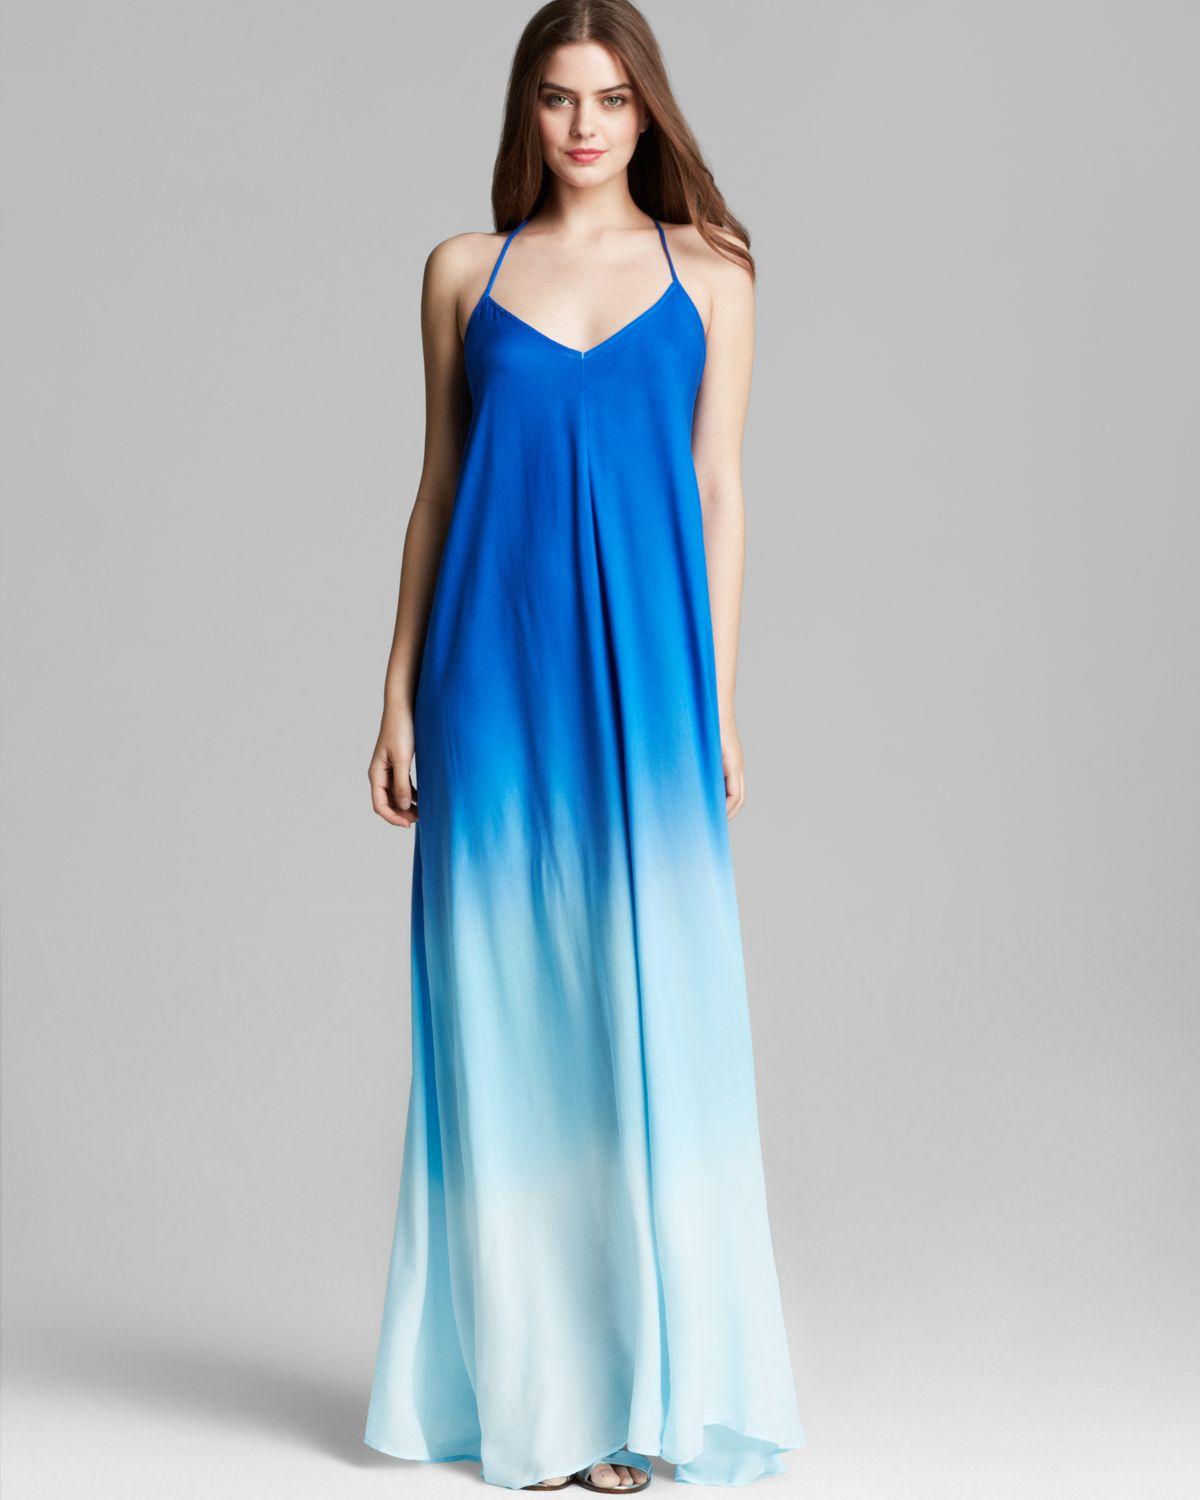 Lyst Young Fabulous Broke Maxi Dress Fortune Ombre In Blue